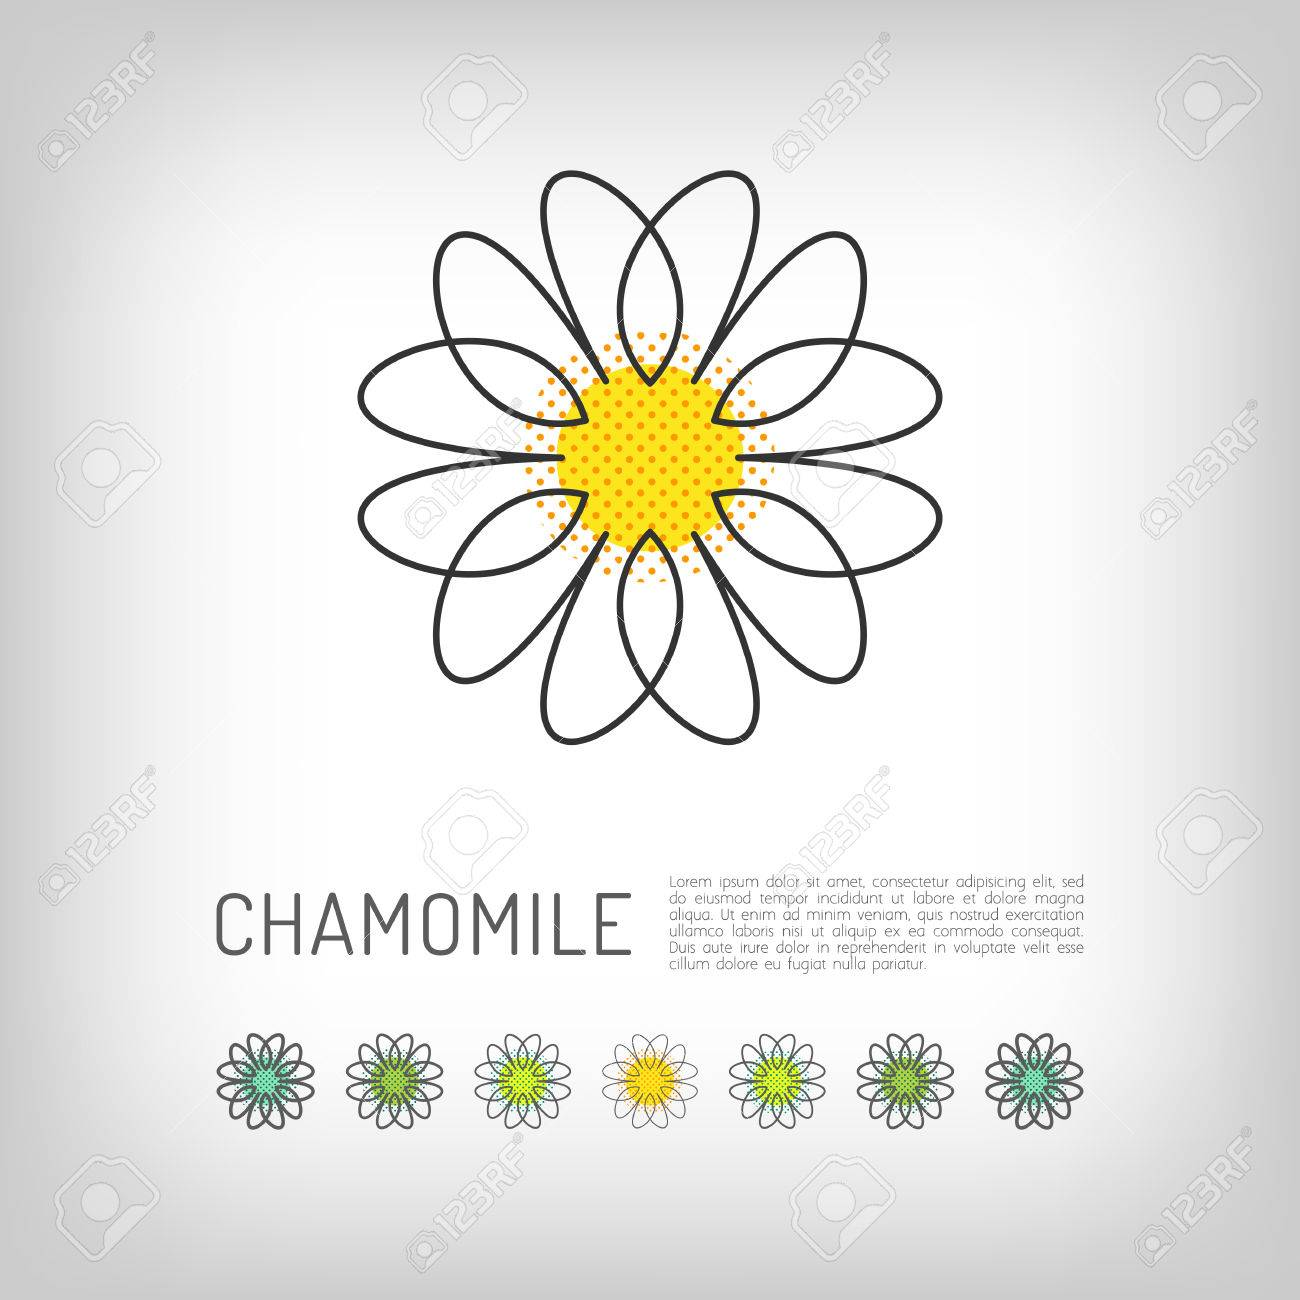 Chamomile Thin Line Art Icon Isolated Daisy Abstract Flower